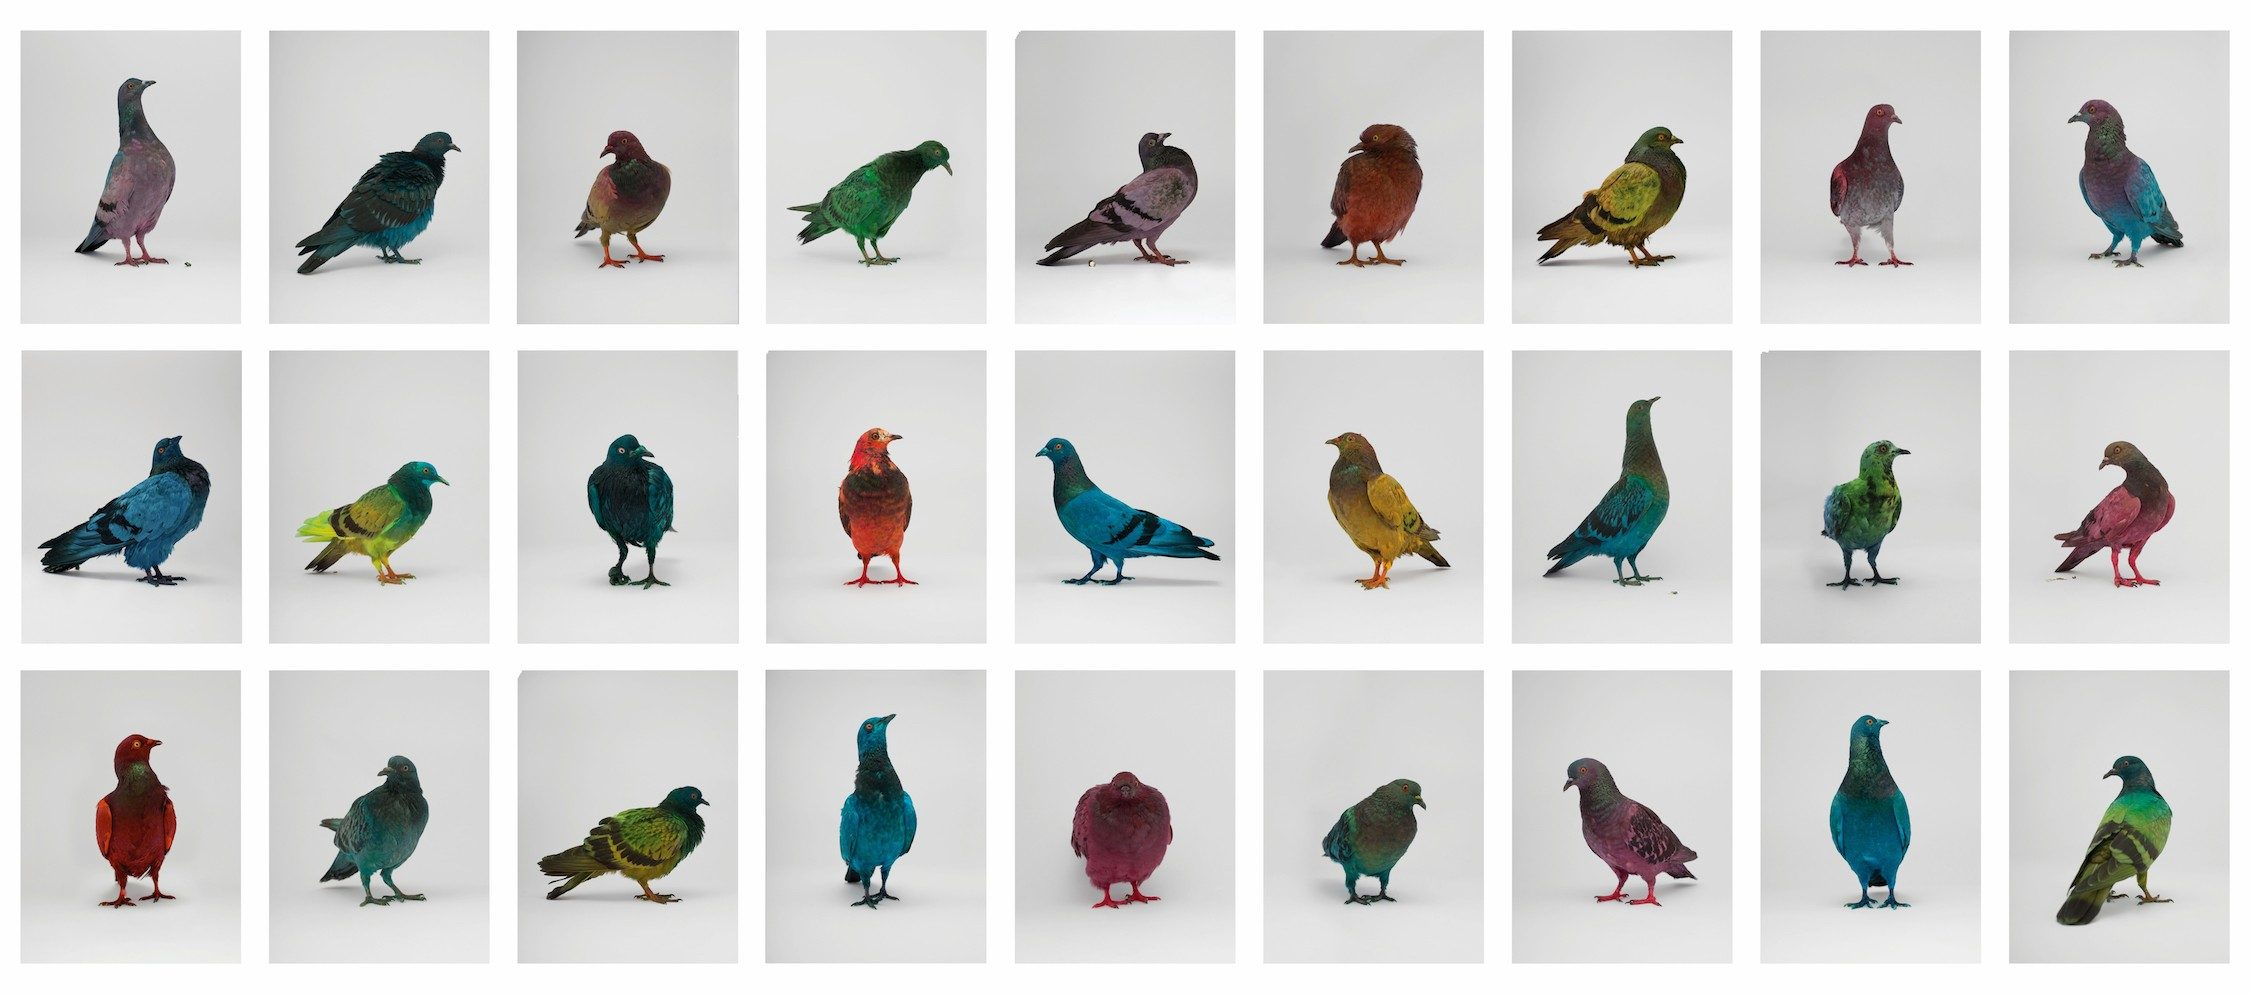 Some Pigeons Are More Equal Than Others (In cooperation with Julian Charrière)